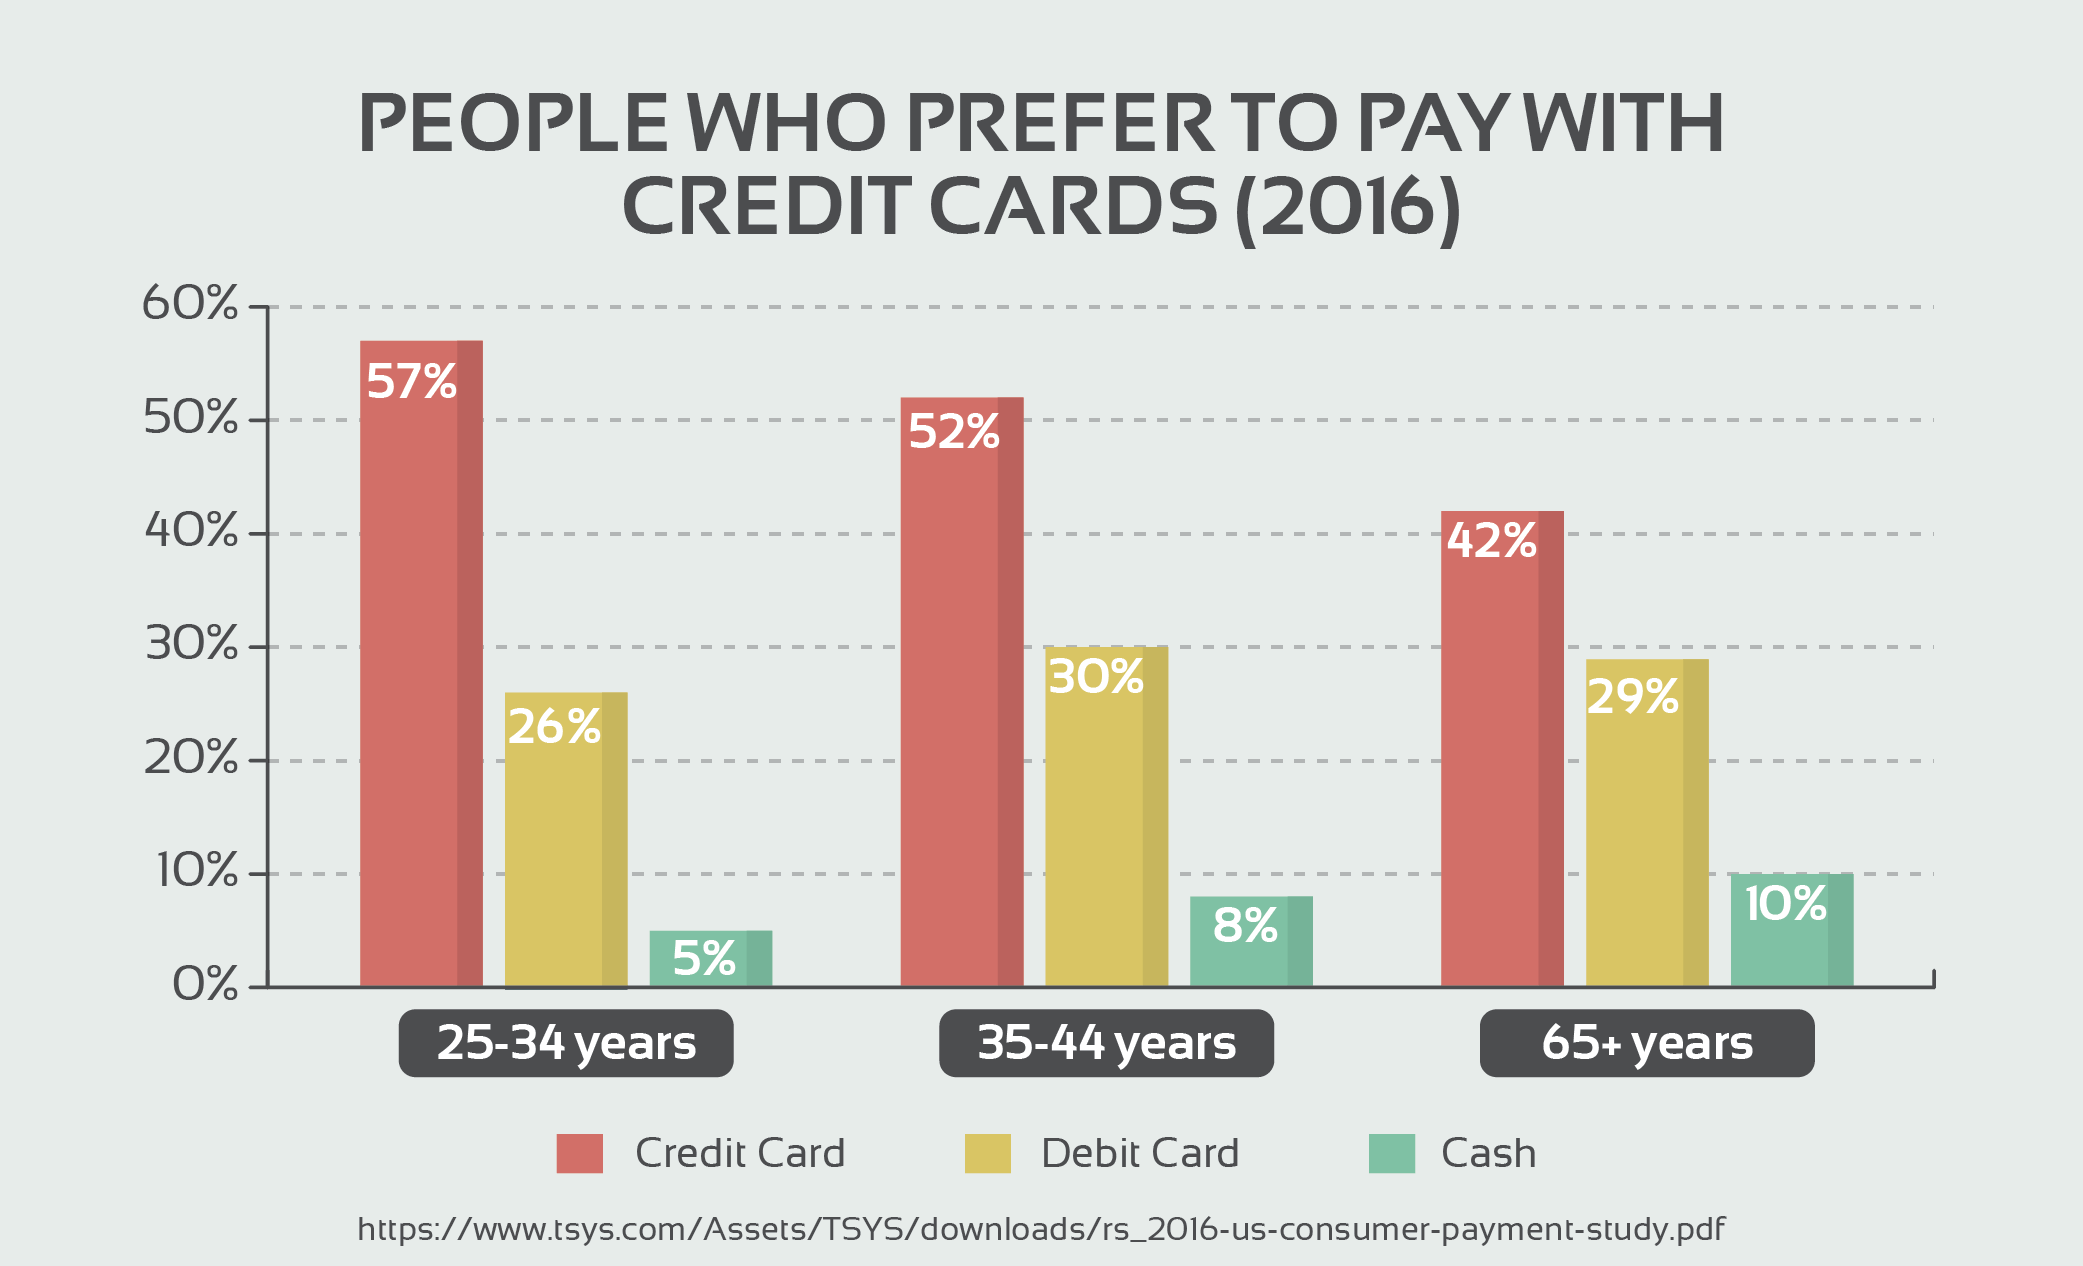 People Who Prefer to Pay With Credit Cards (2016)